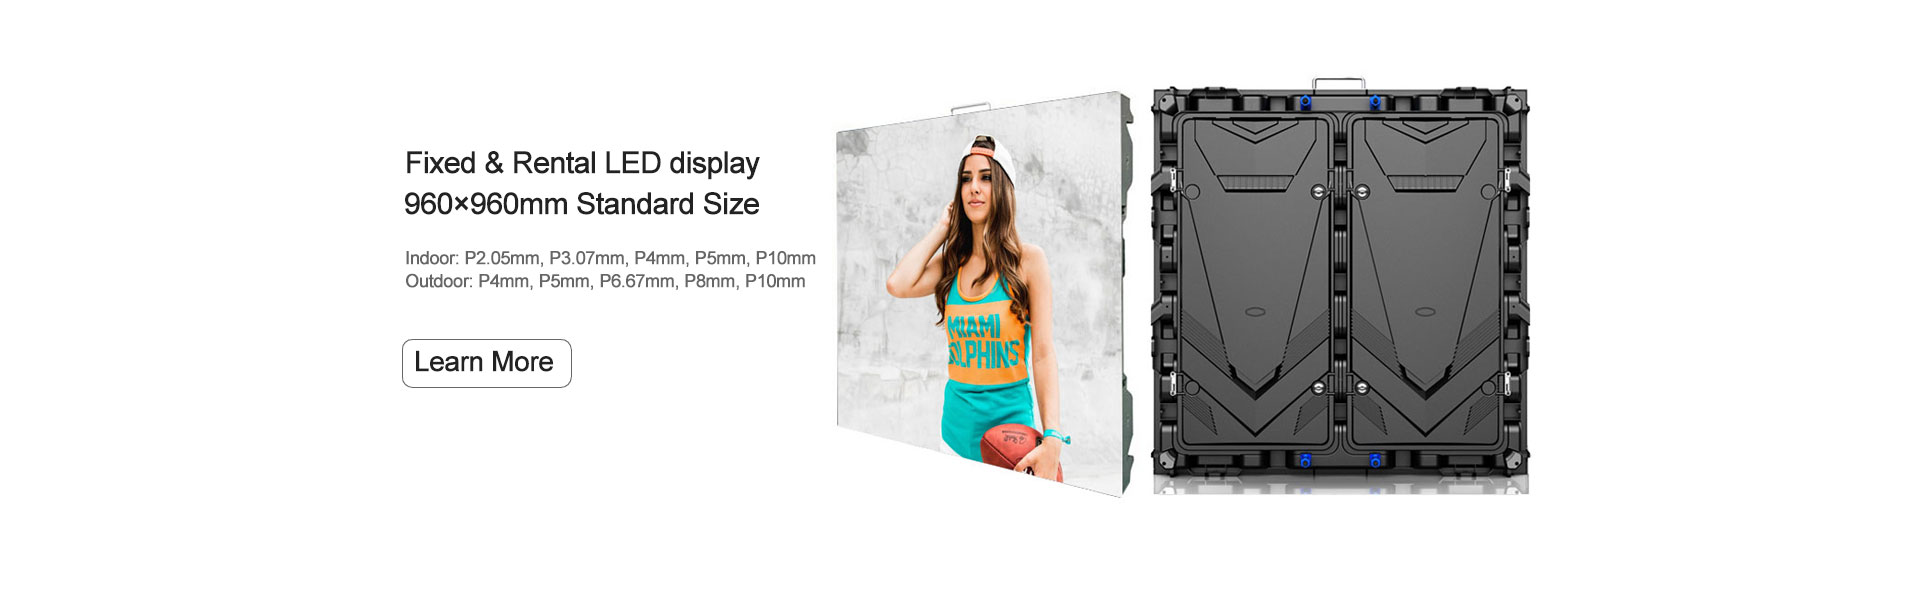 Standard Size 960mmx960mm LED display